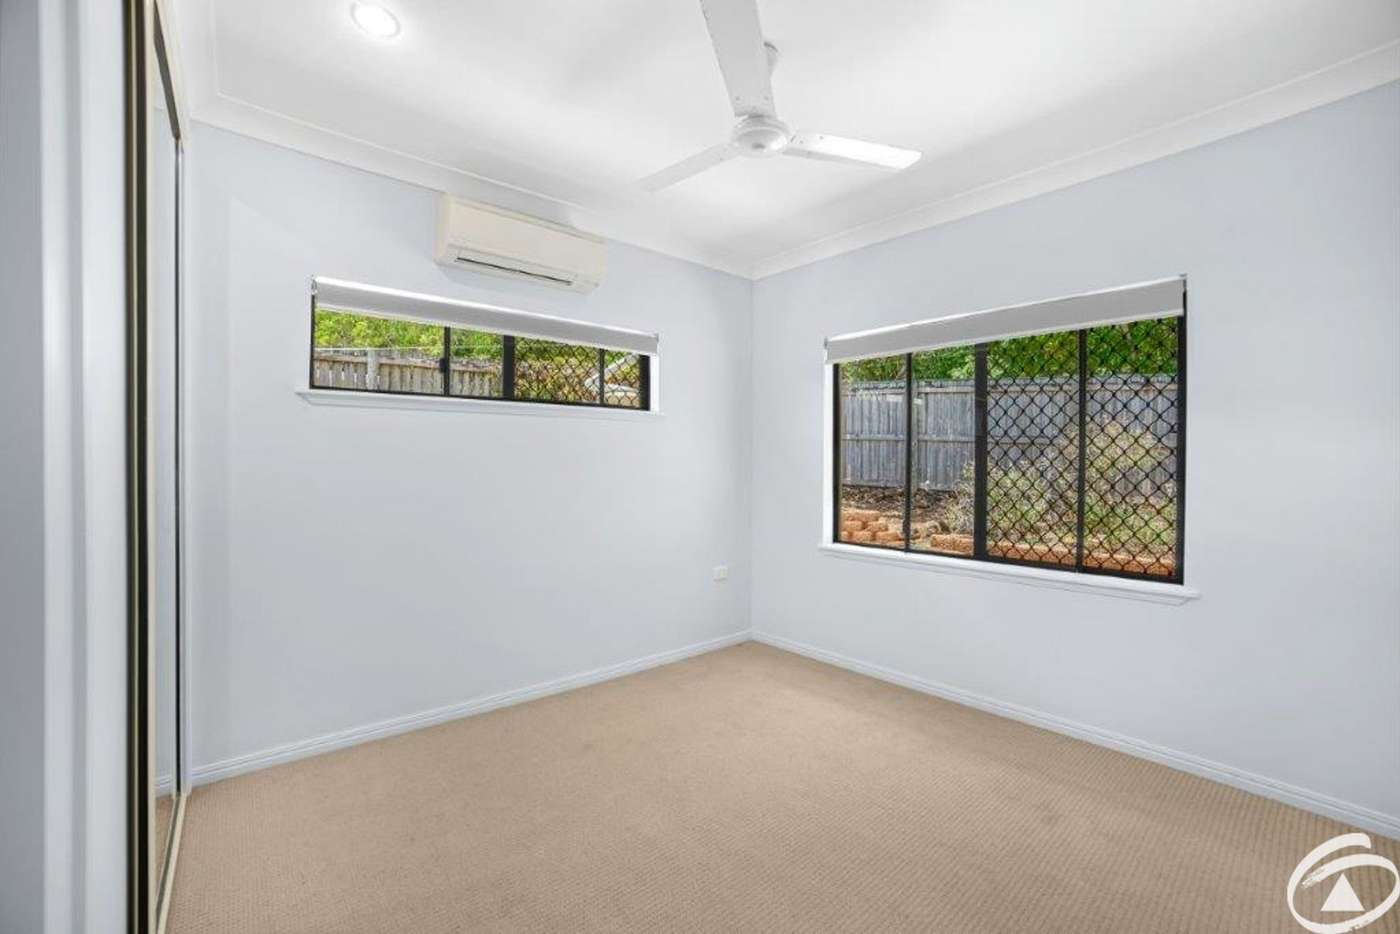 Sixth view of Homely house listing, 7 Tradewinds Close, Redlynch QLD 4870